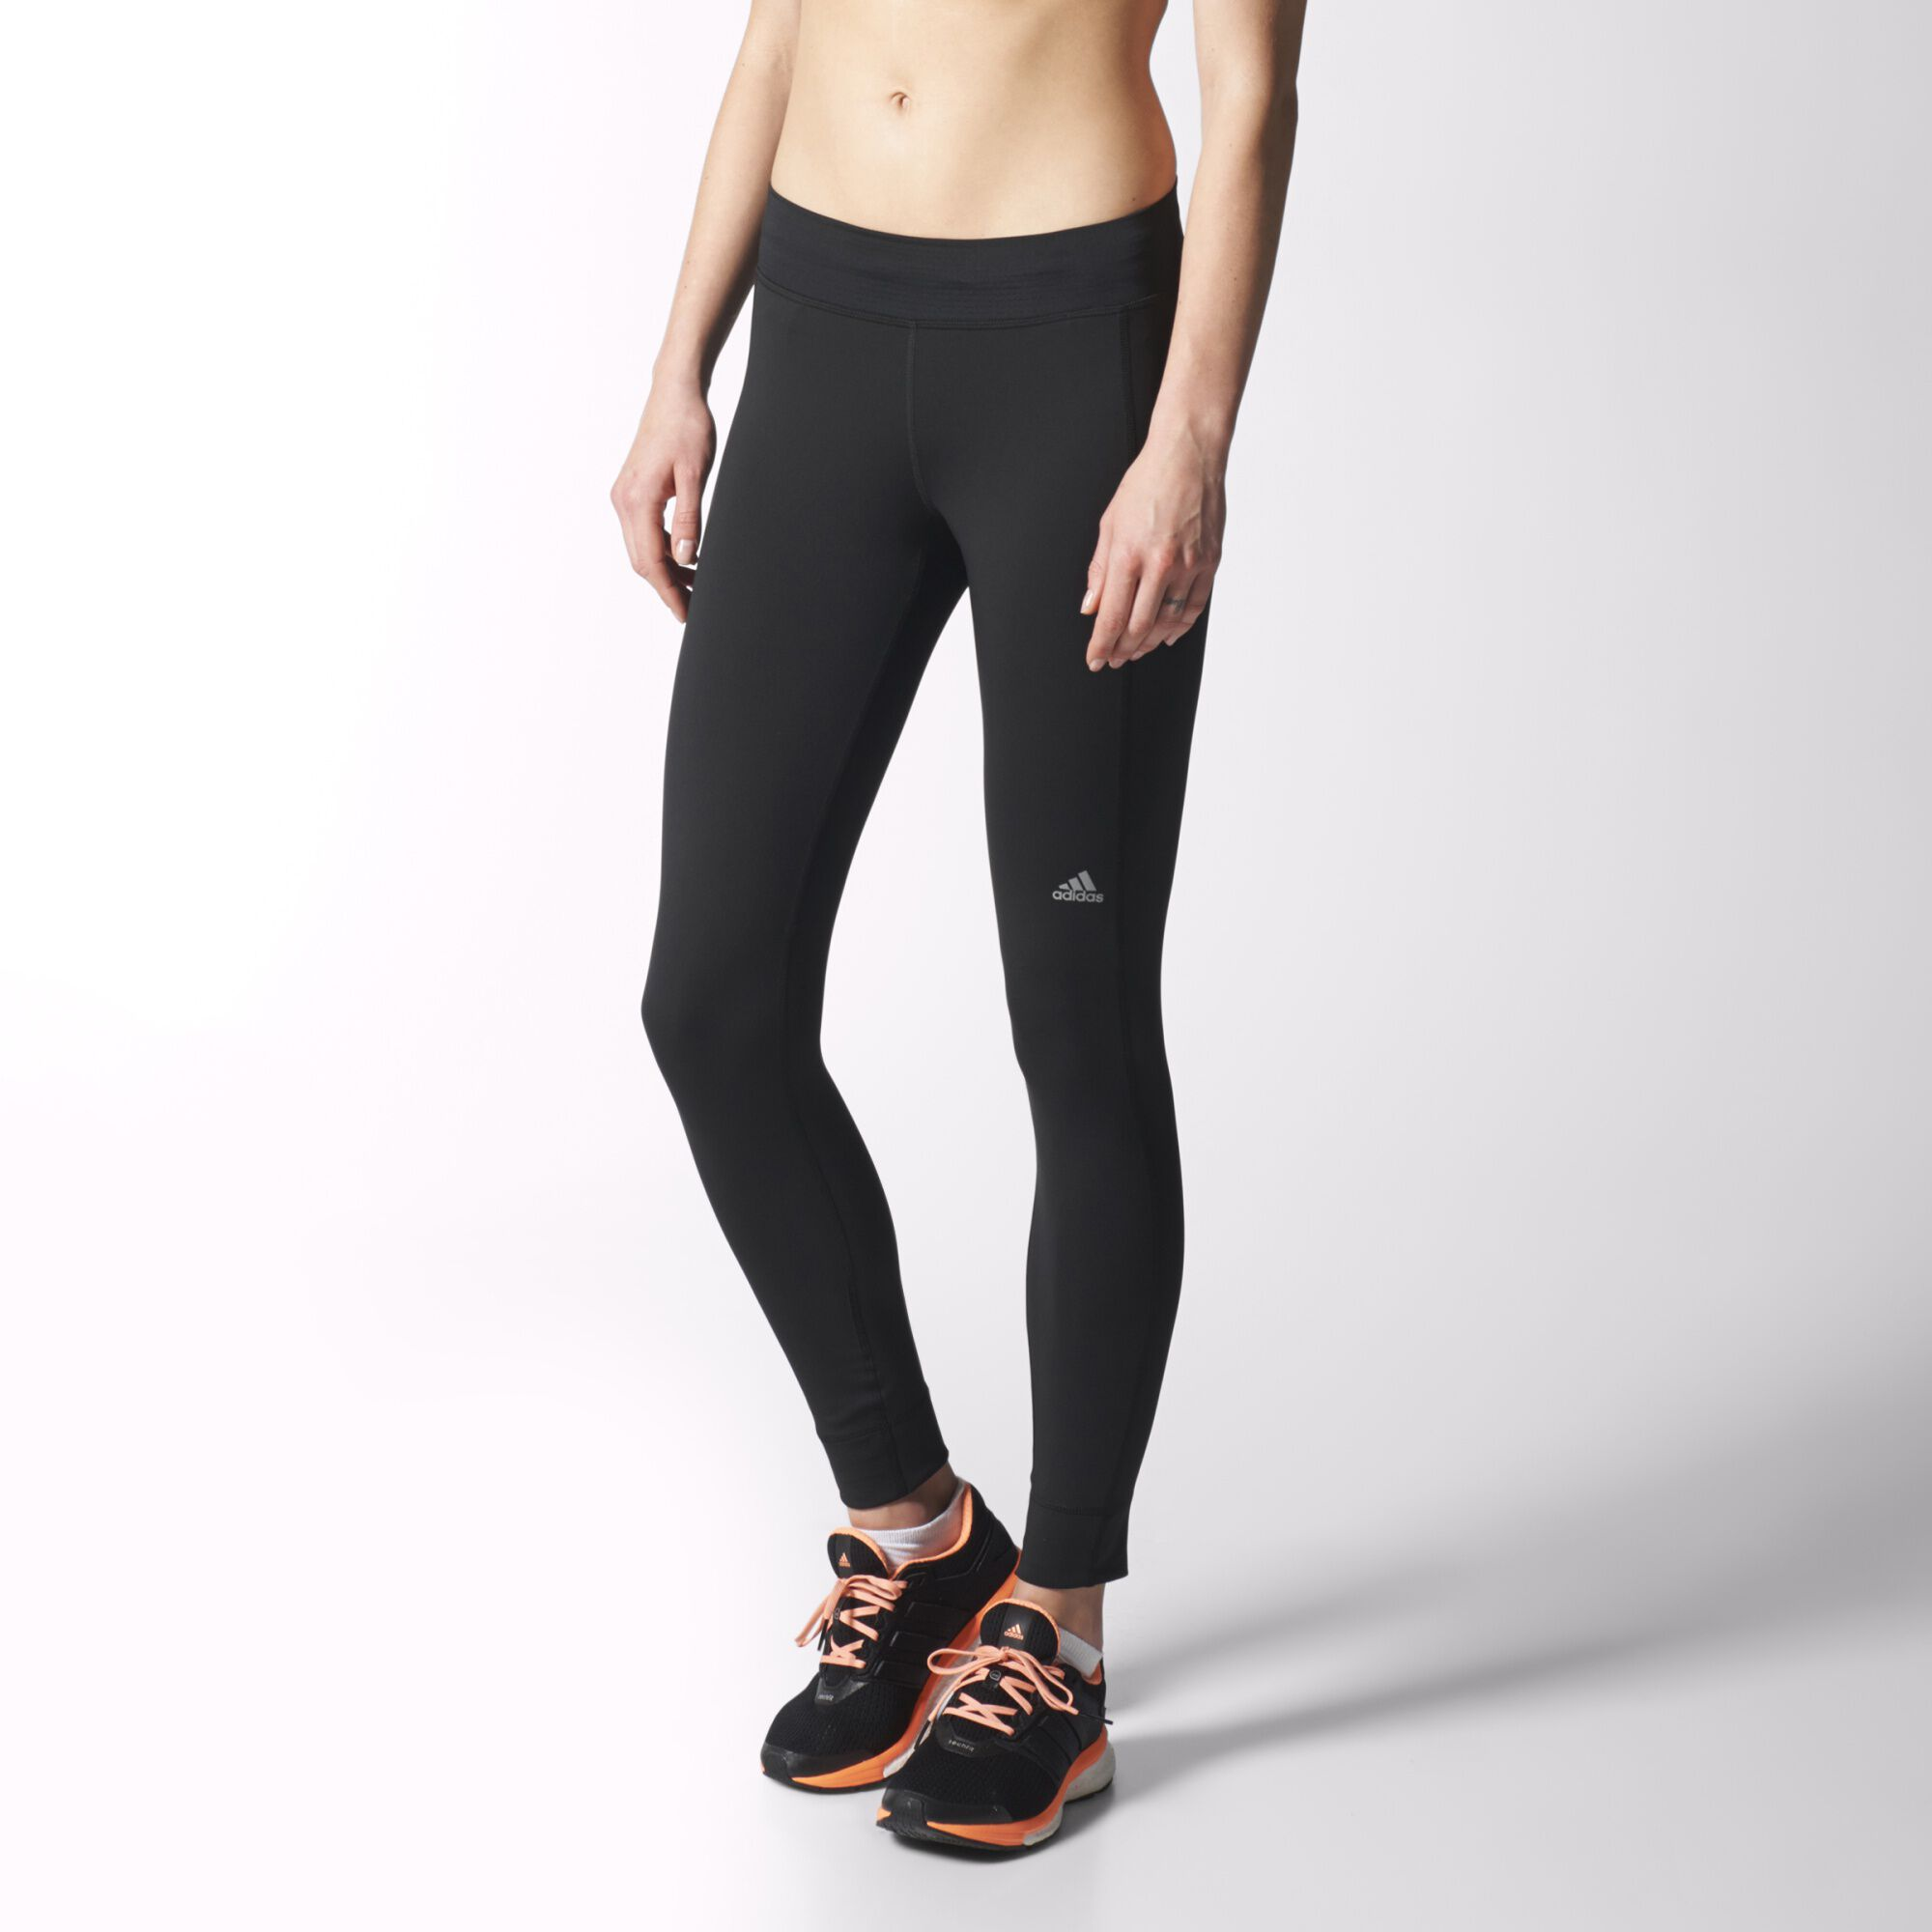 femmes sequencials climacool running tights. Black Bedroom Furniture Sets. Home Design Ideas